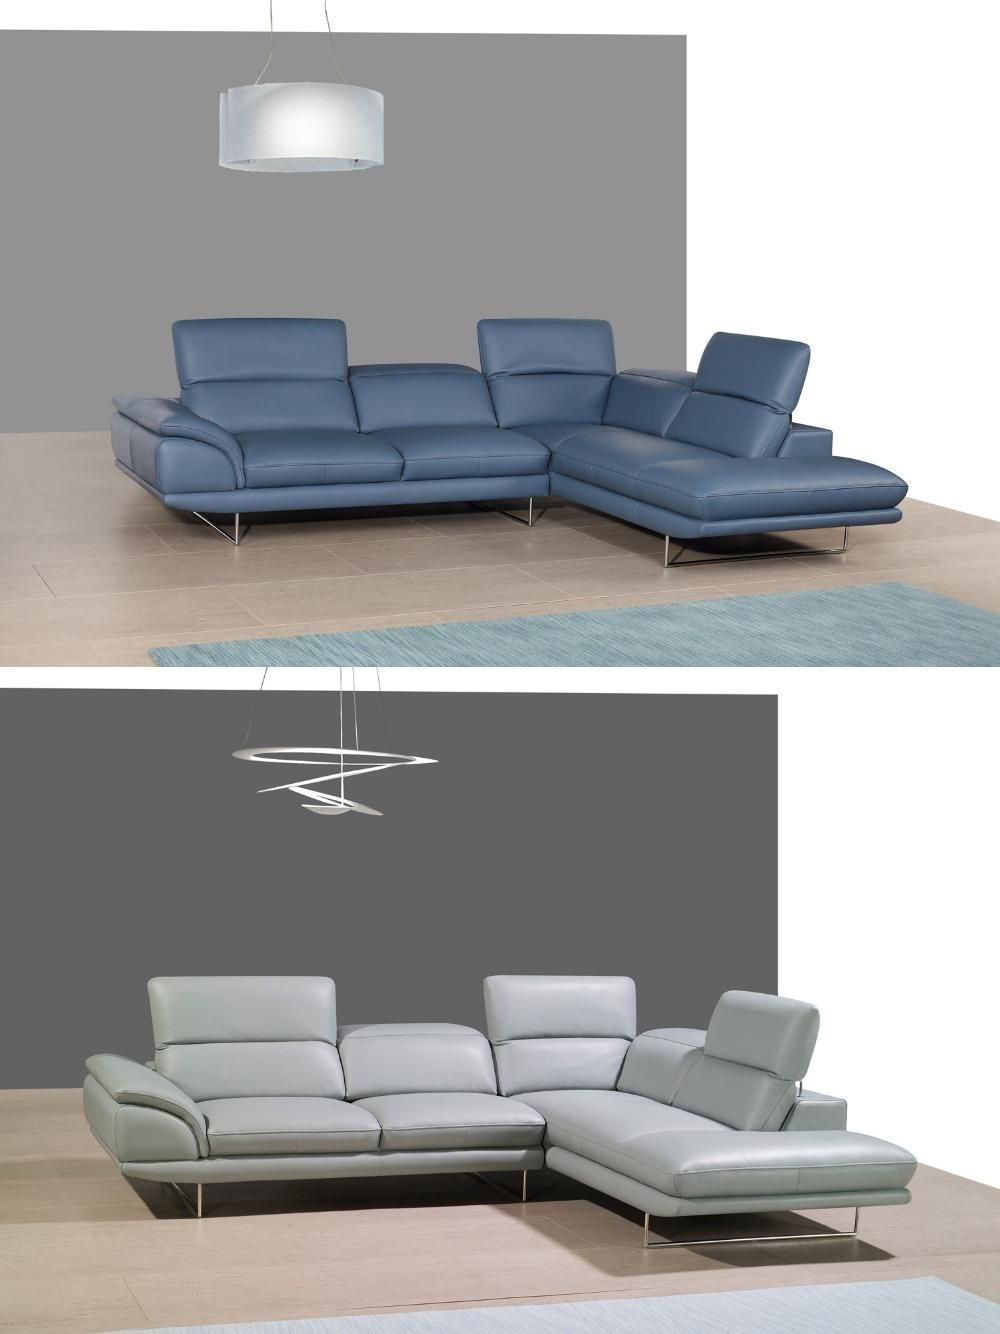 genuine leather sofa uk rattan sleeper sets sectional living room corner home furniture couches with functional headrest modern style